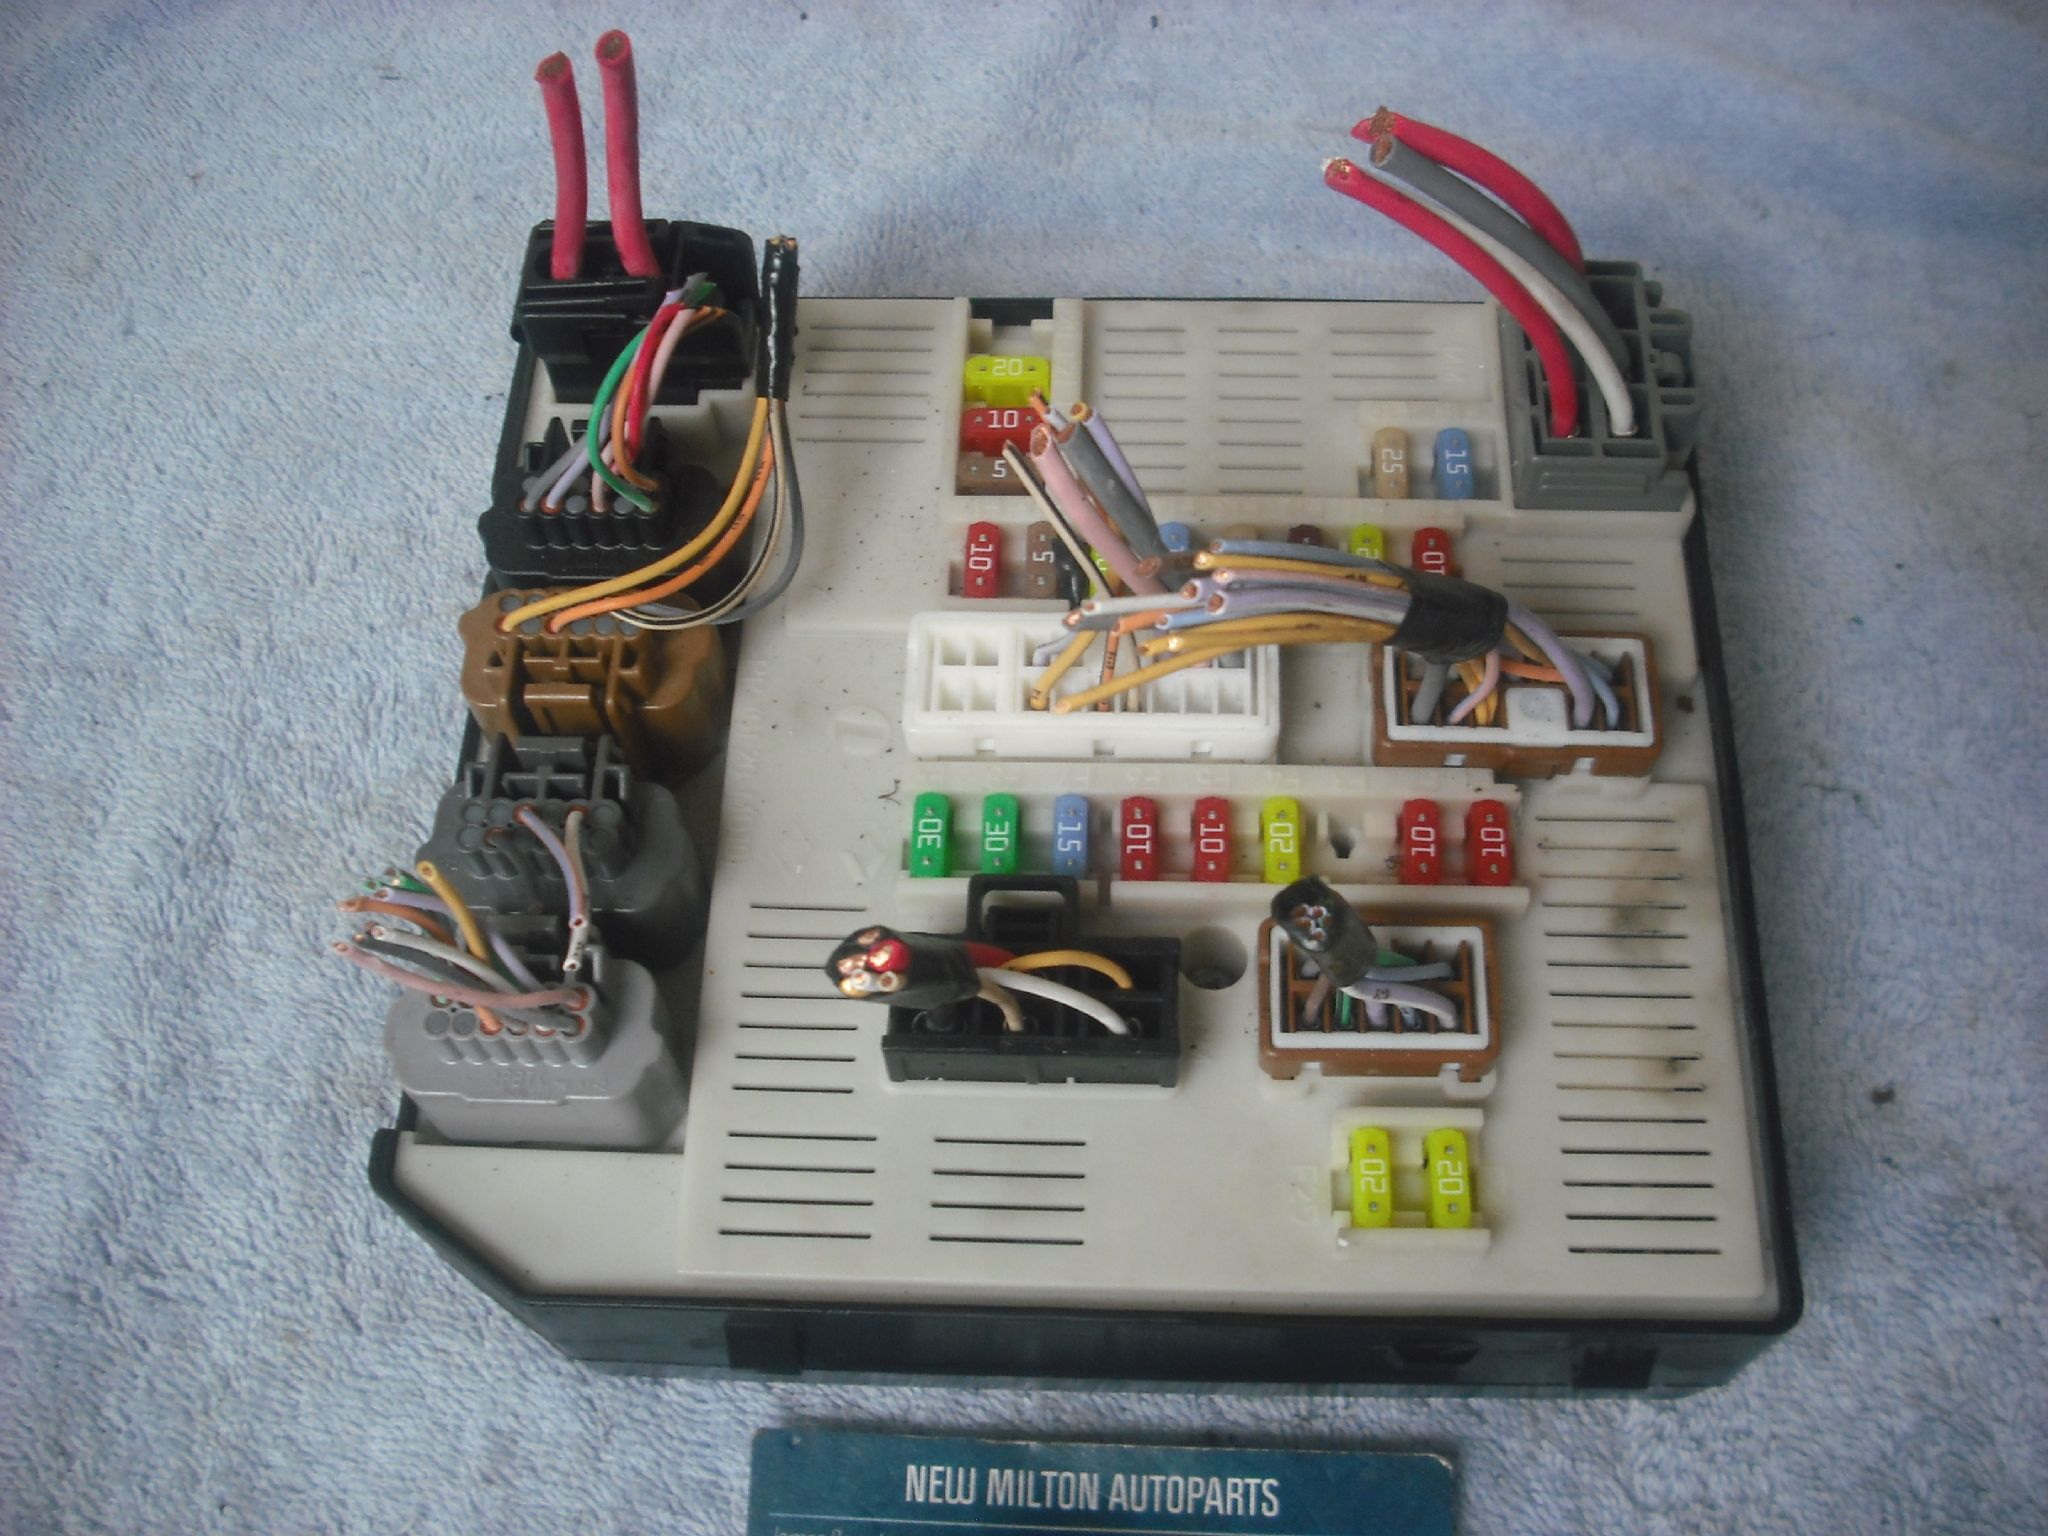 fuse box cables wiring diagram Fuse Box Wiring mk3 fuse box wire wiring diagrams losemk3 fuse box wire data wiring diagram schematic fuse box